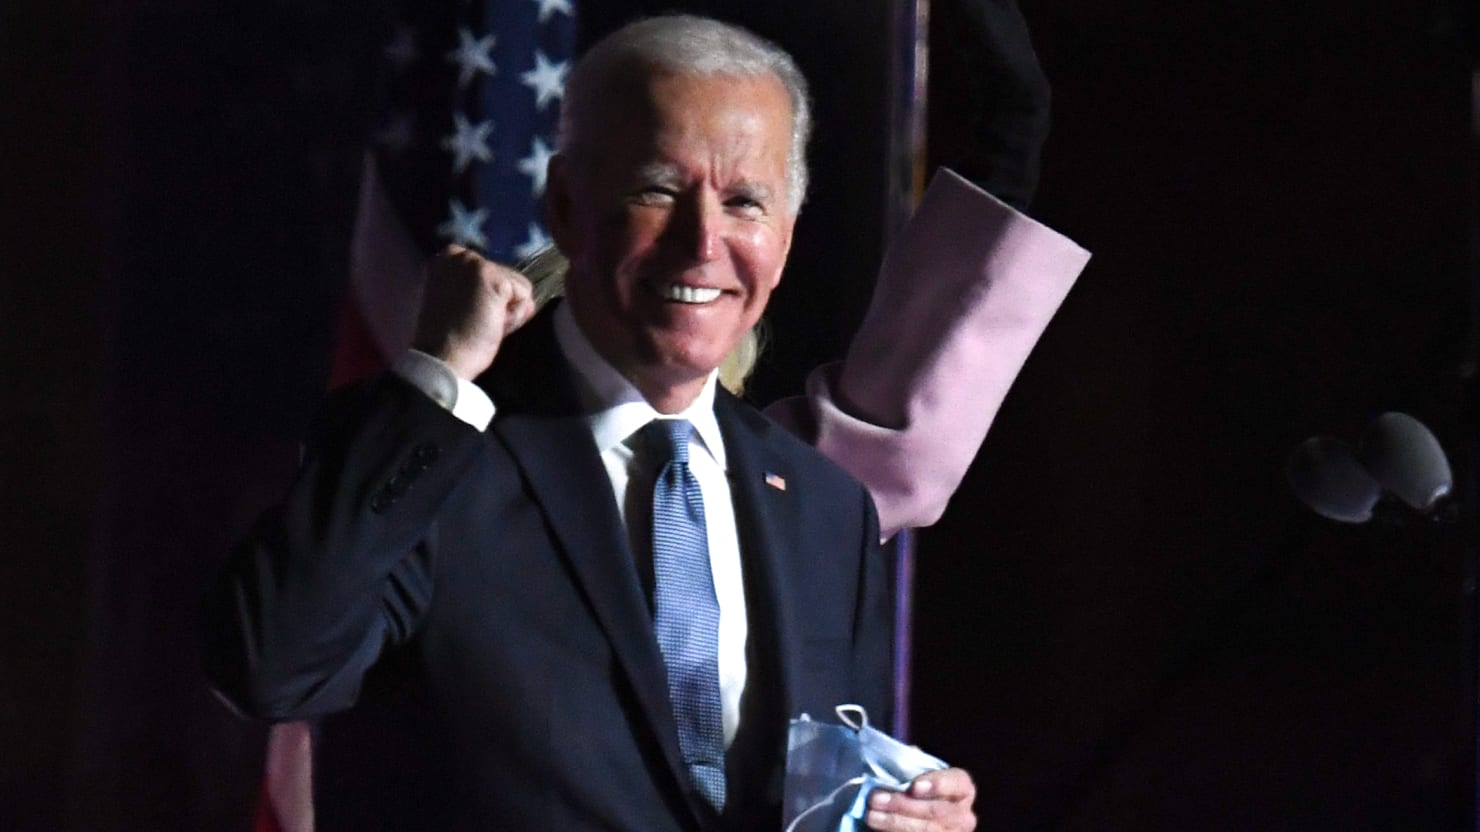 Biden in Election Night Address: 'We Feel Good About Where We Are'